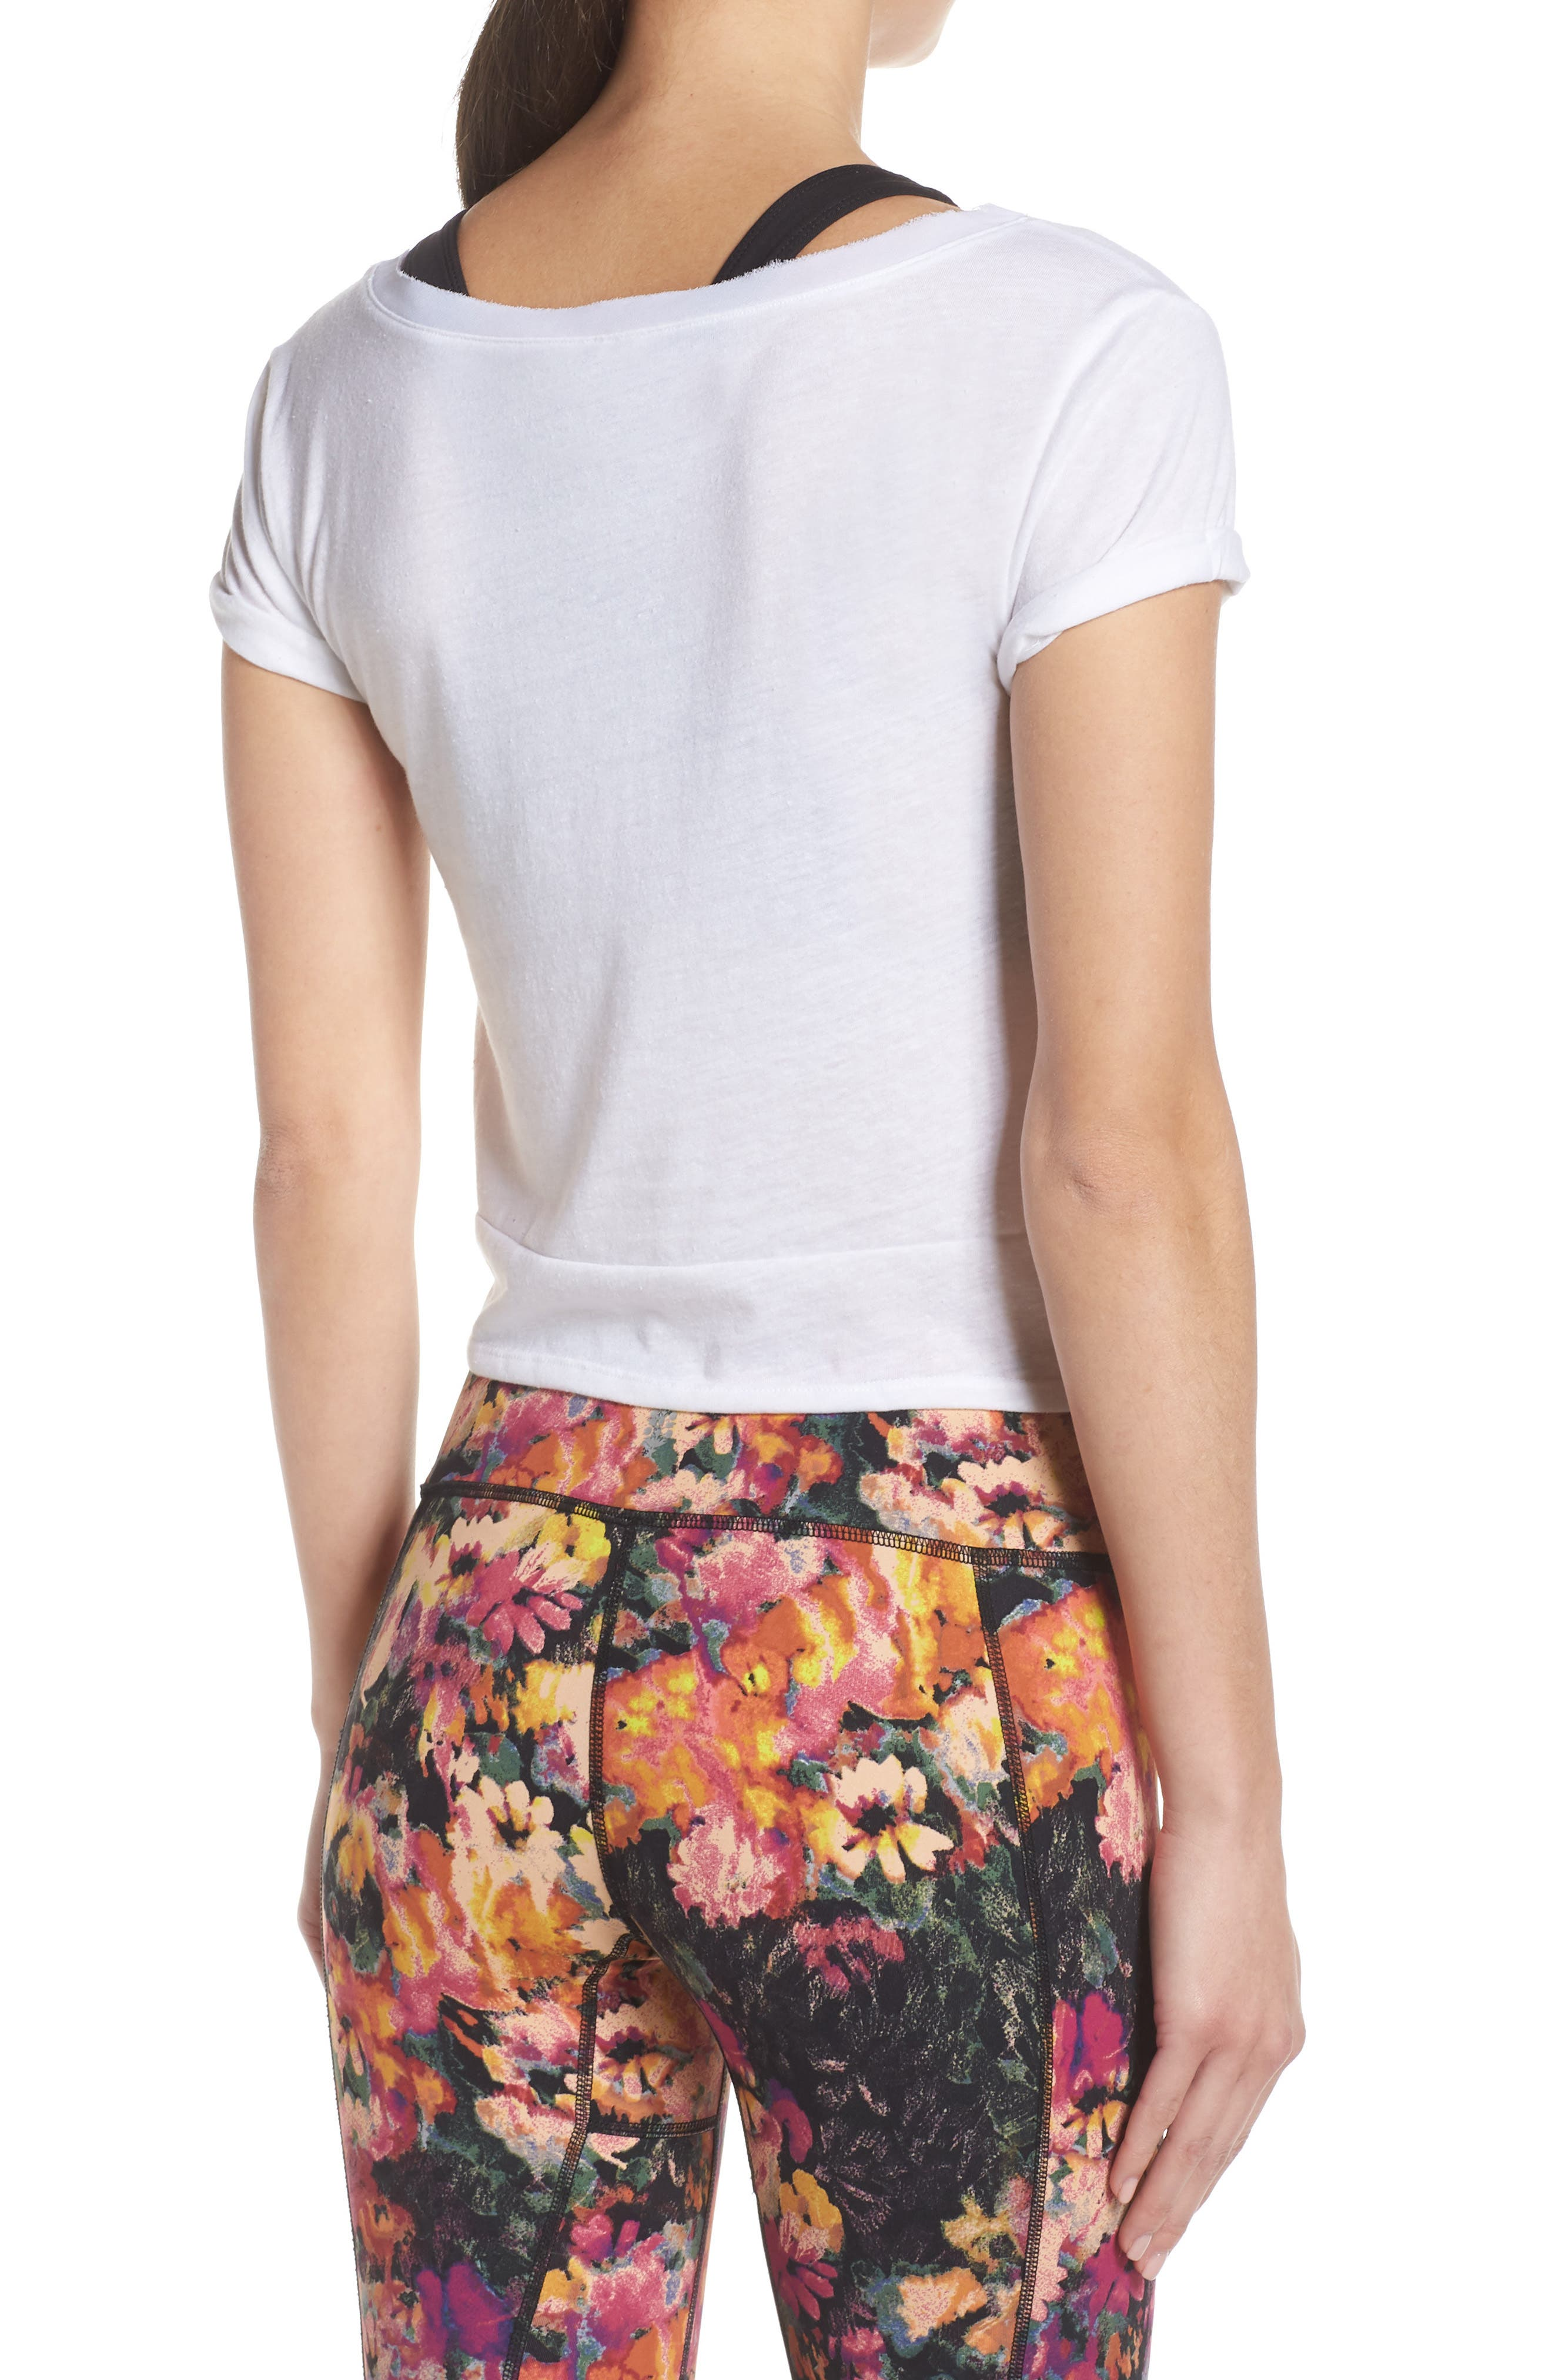 FREE PEOPLE MOVEMENT, Run in the Sun Print Tee, Alternate thumbnail 2, color, WHITE